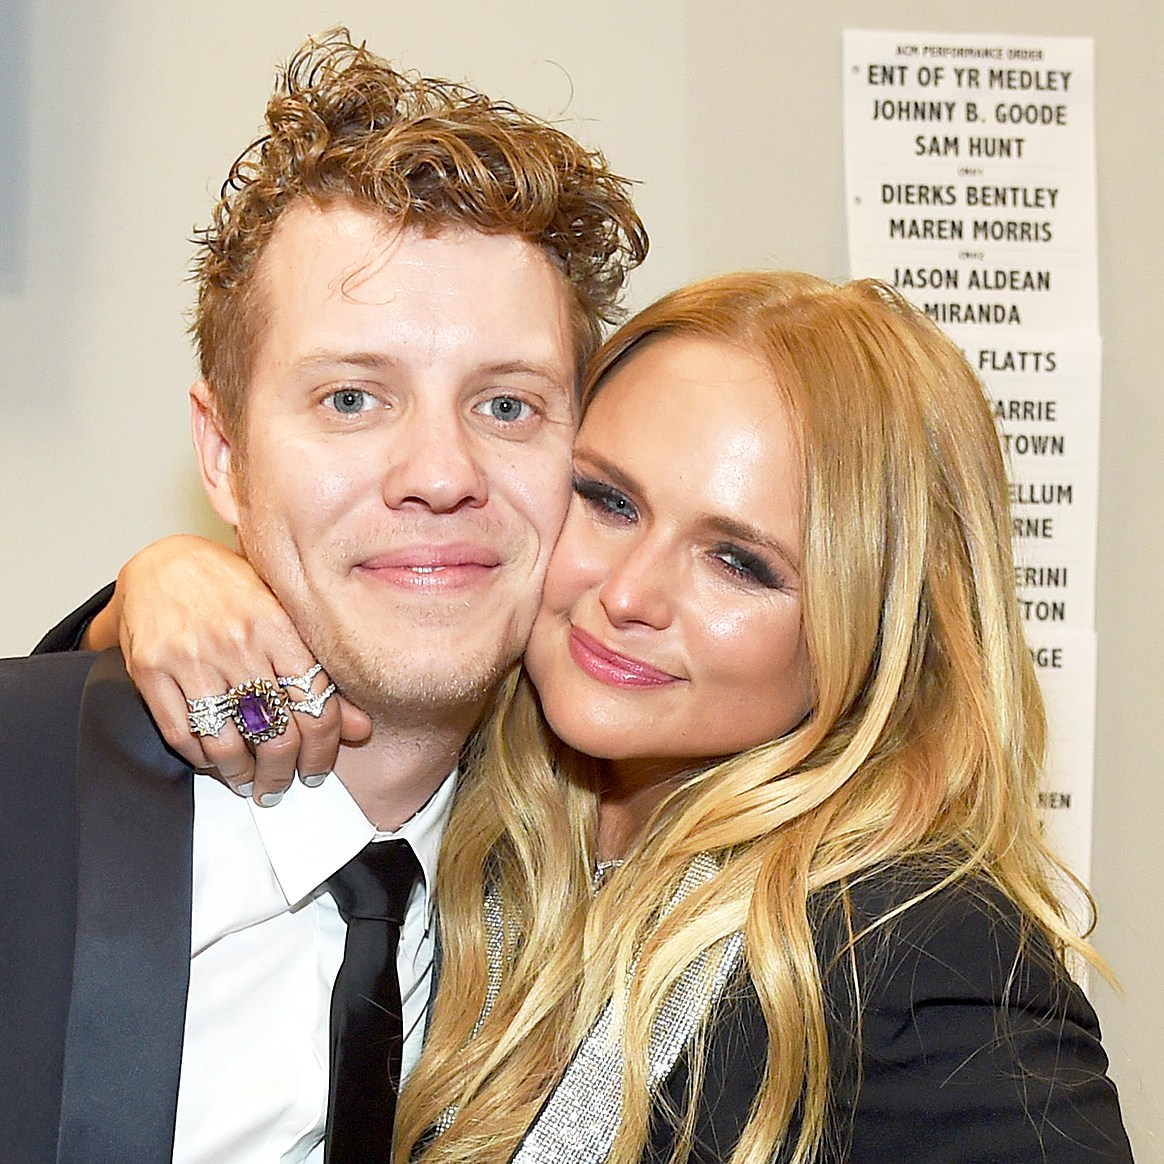 Anderson East and Miranda Lambert attends the 52nd Academy Of Country Music Awards at T-Mobile Arena in Las Vegas, Nevada.